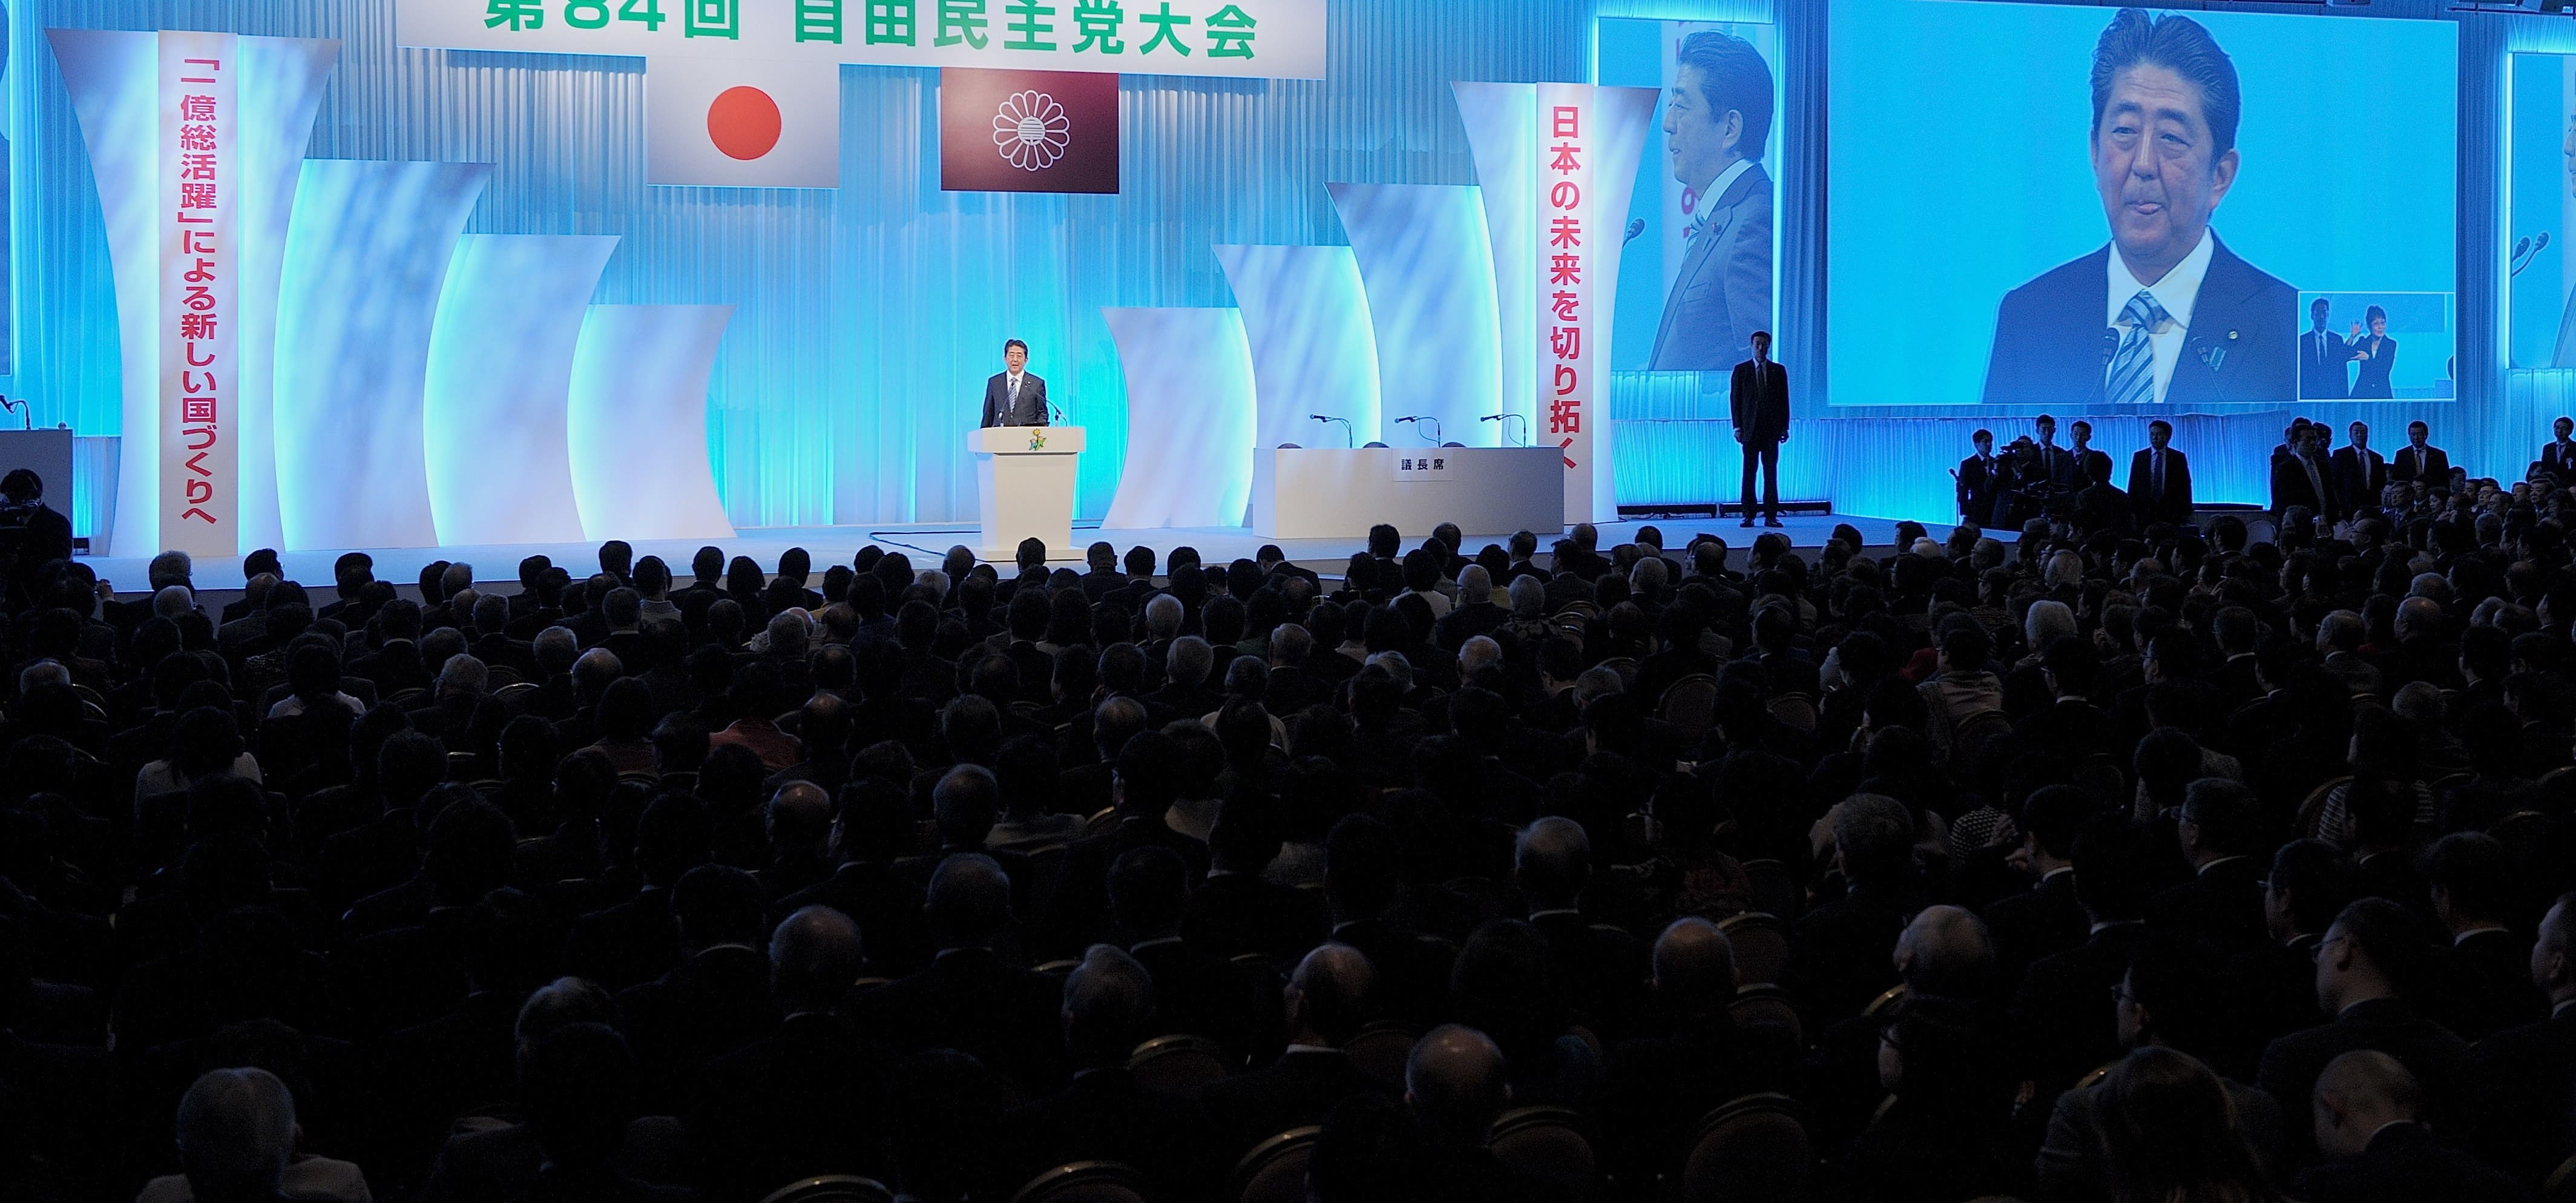 Japanese Prime Minister Shinzo Abe delivering a speech at the Liberal Democratic Party's convention, March 2017 (Photo: Getty Images/Anadolu Agency)